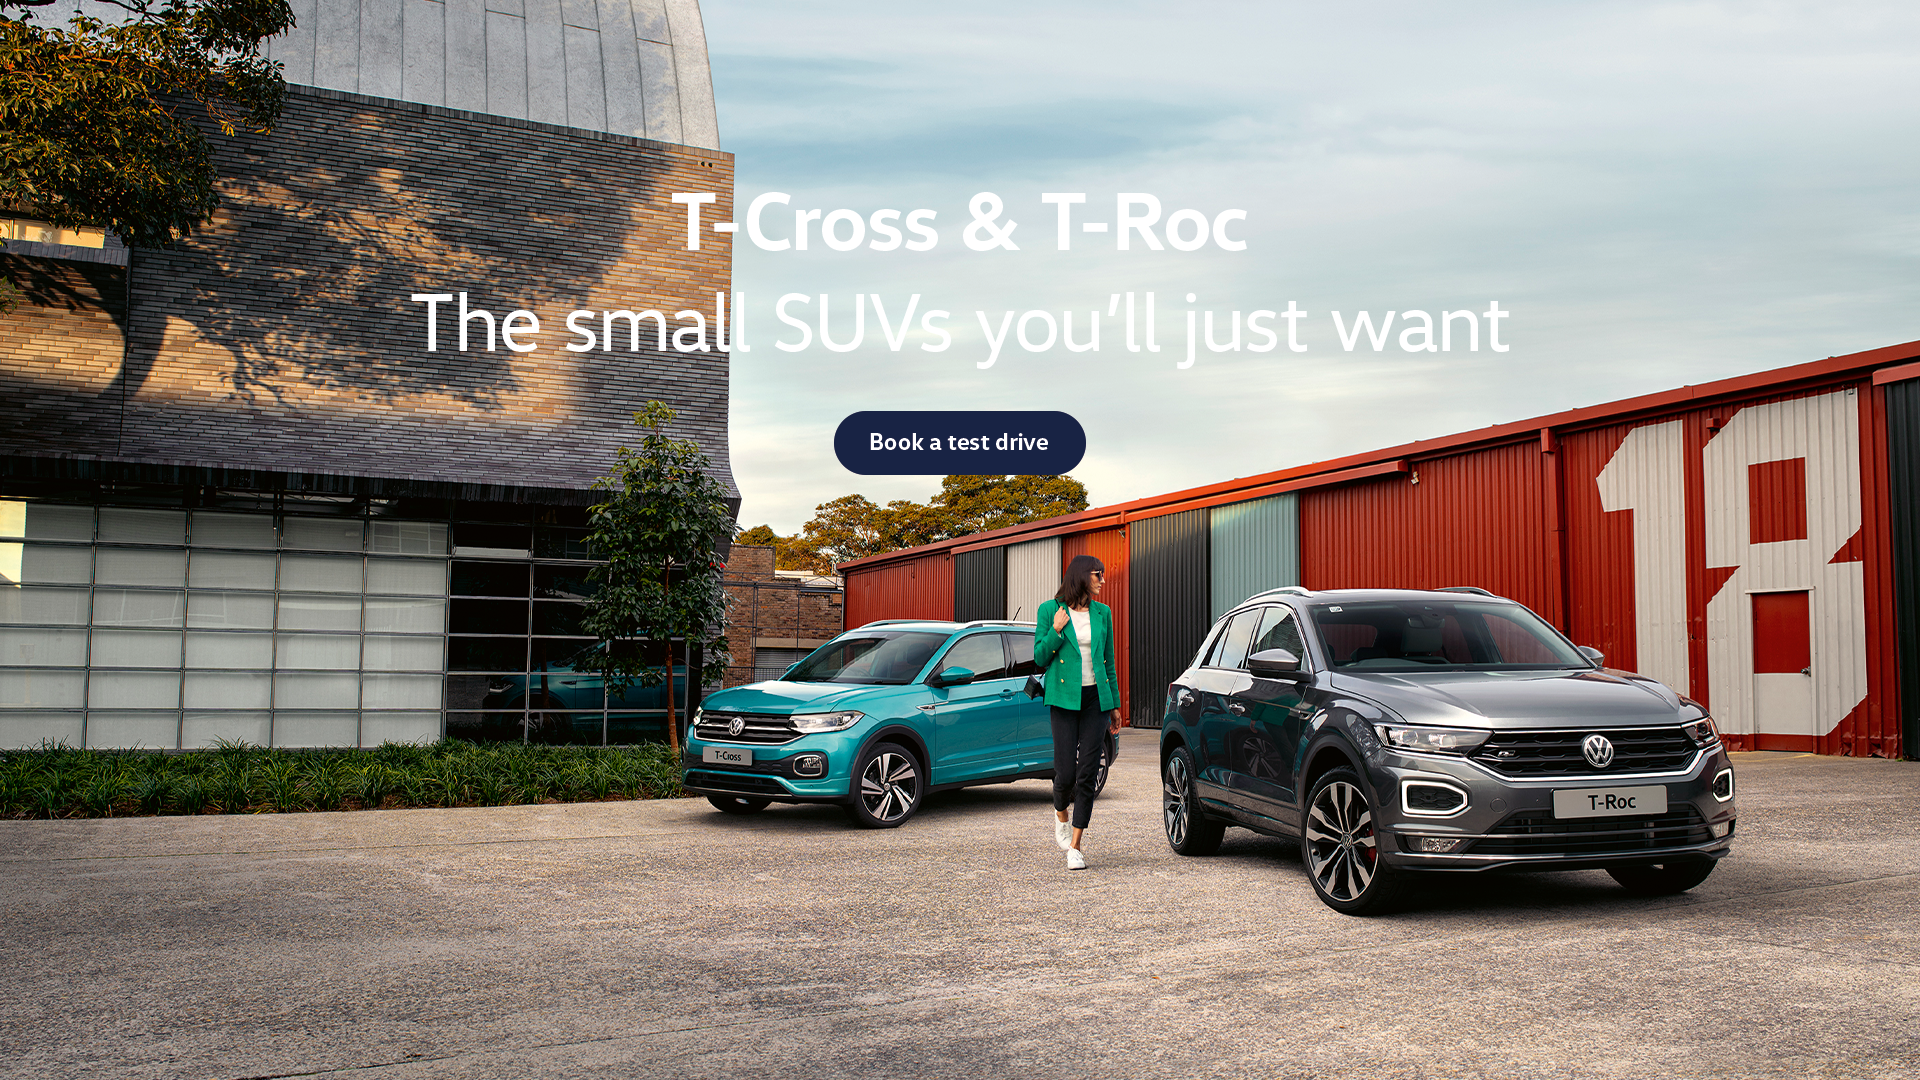 Volkswagen Small SUV range. Test drive today at Shepparton Volkswagen.